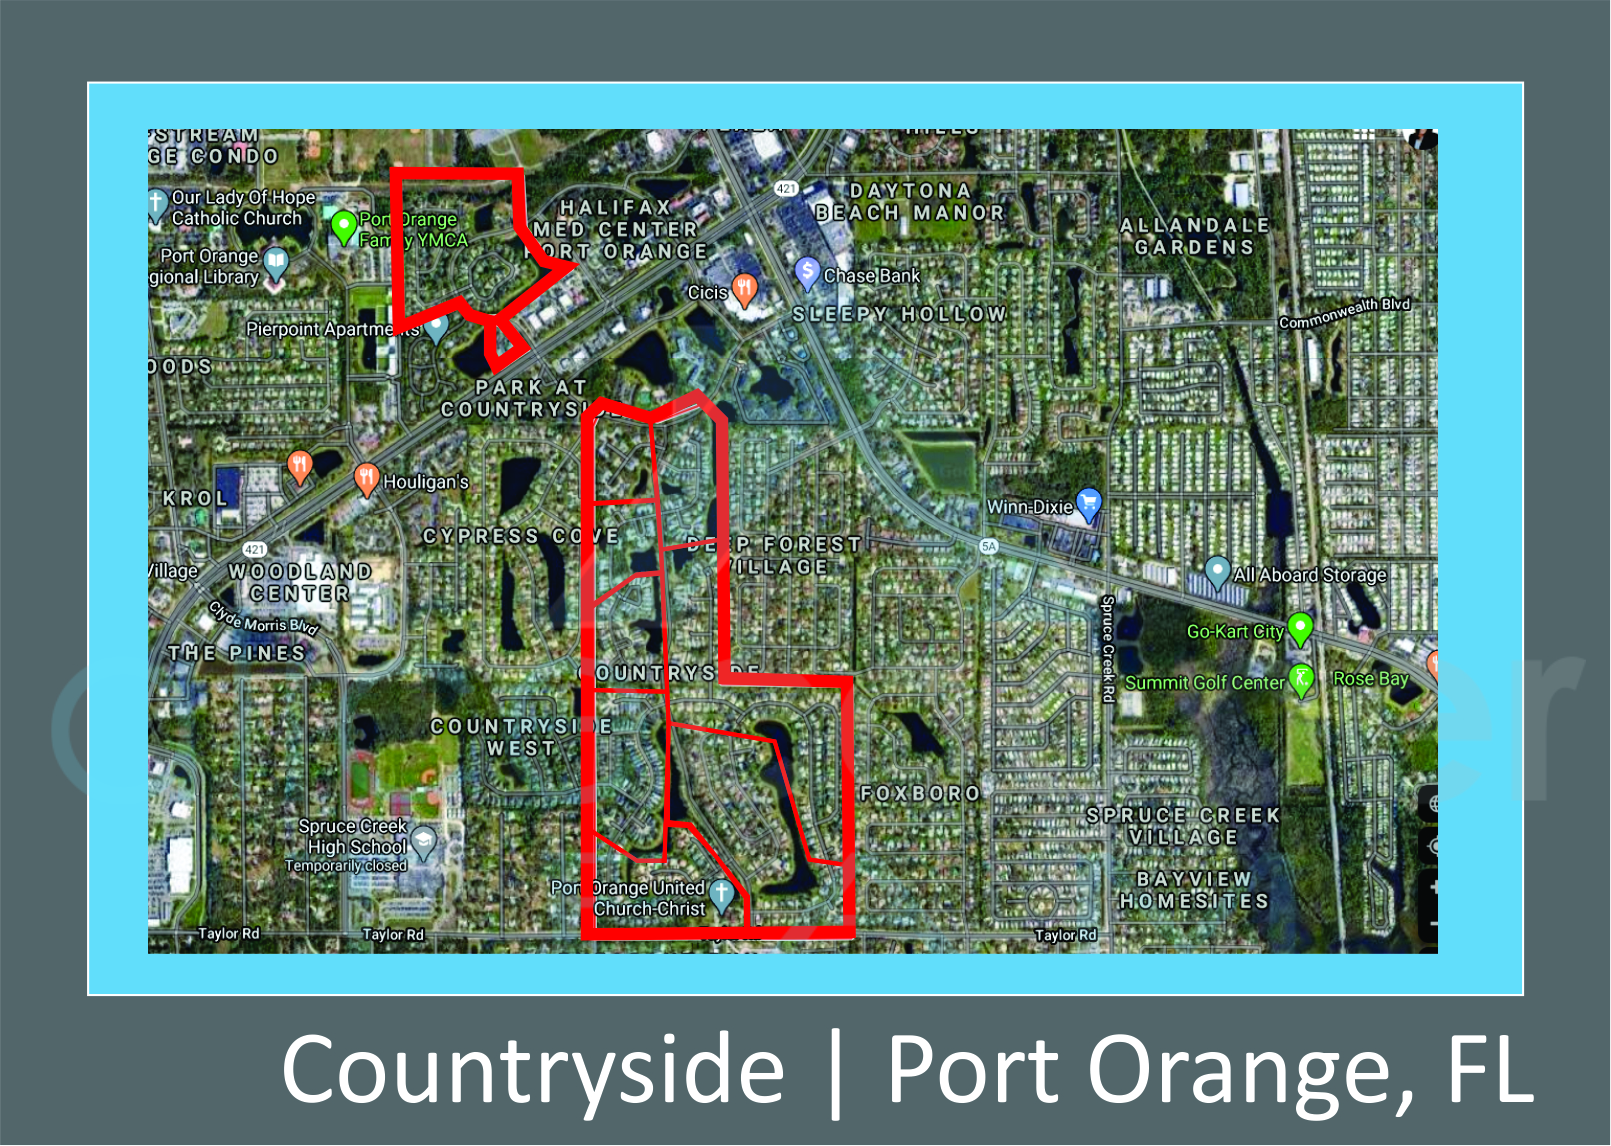 Map of Countryside in Port Orange